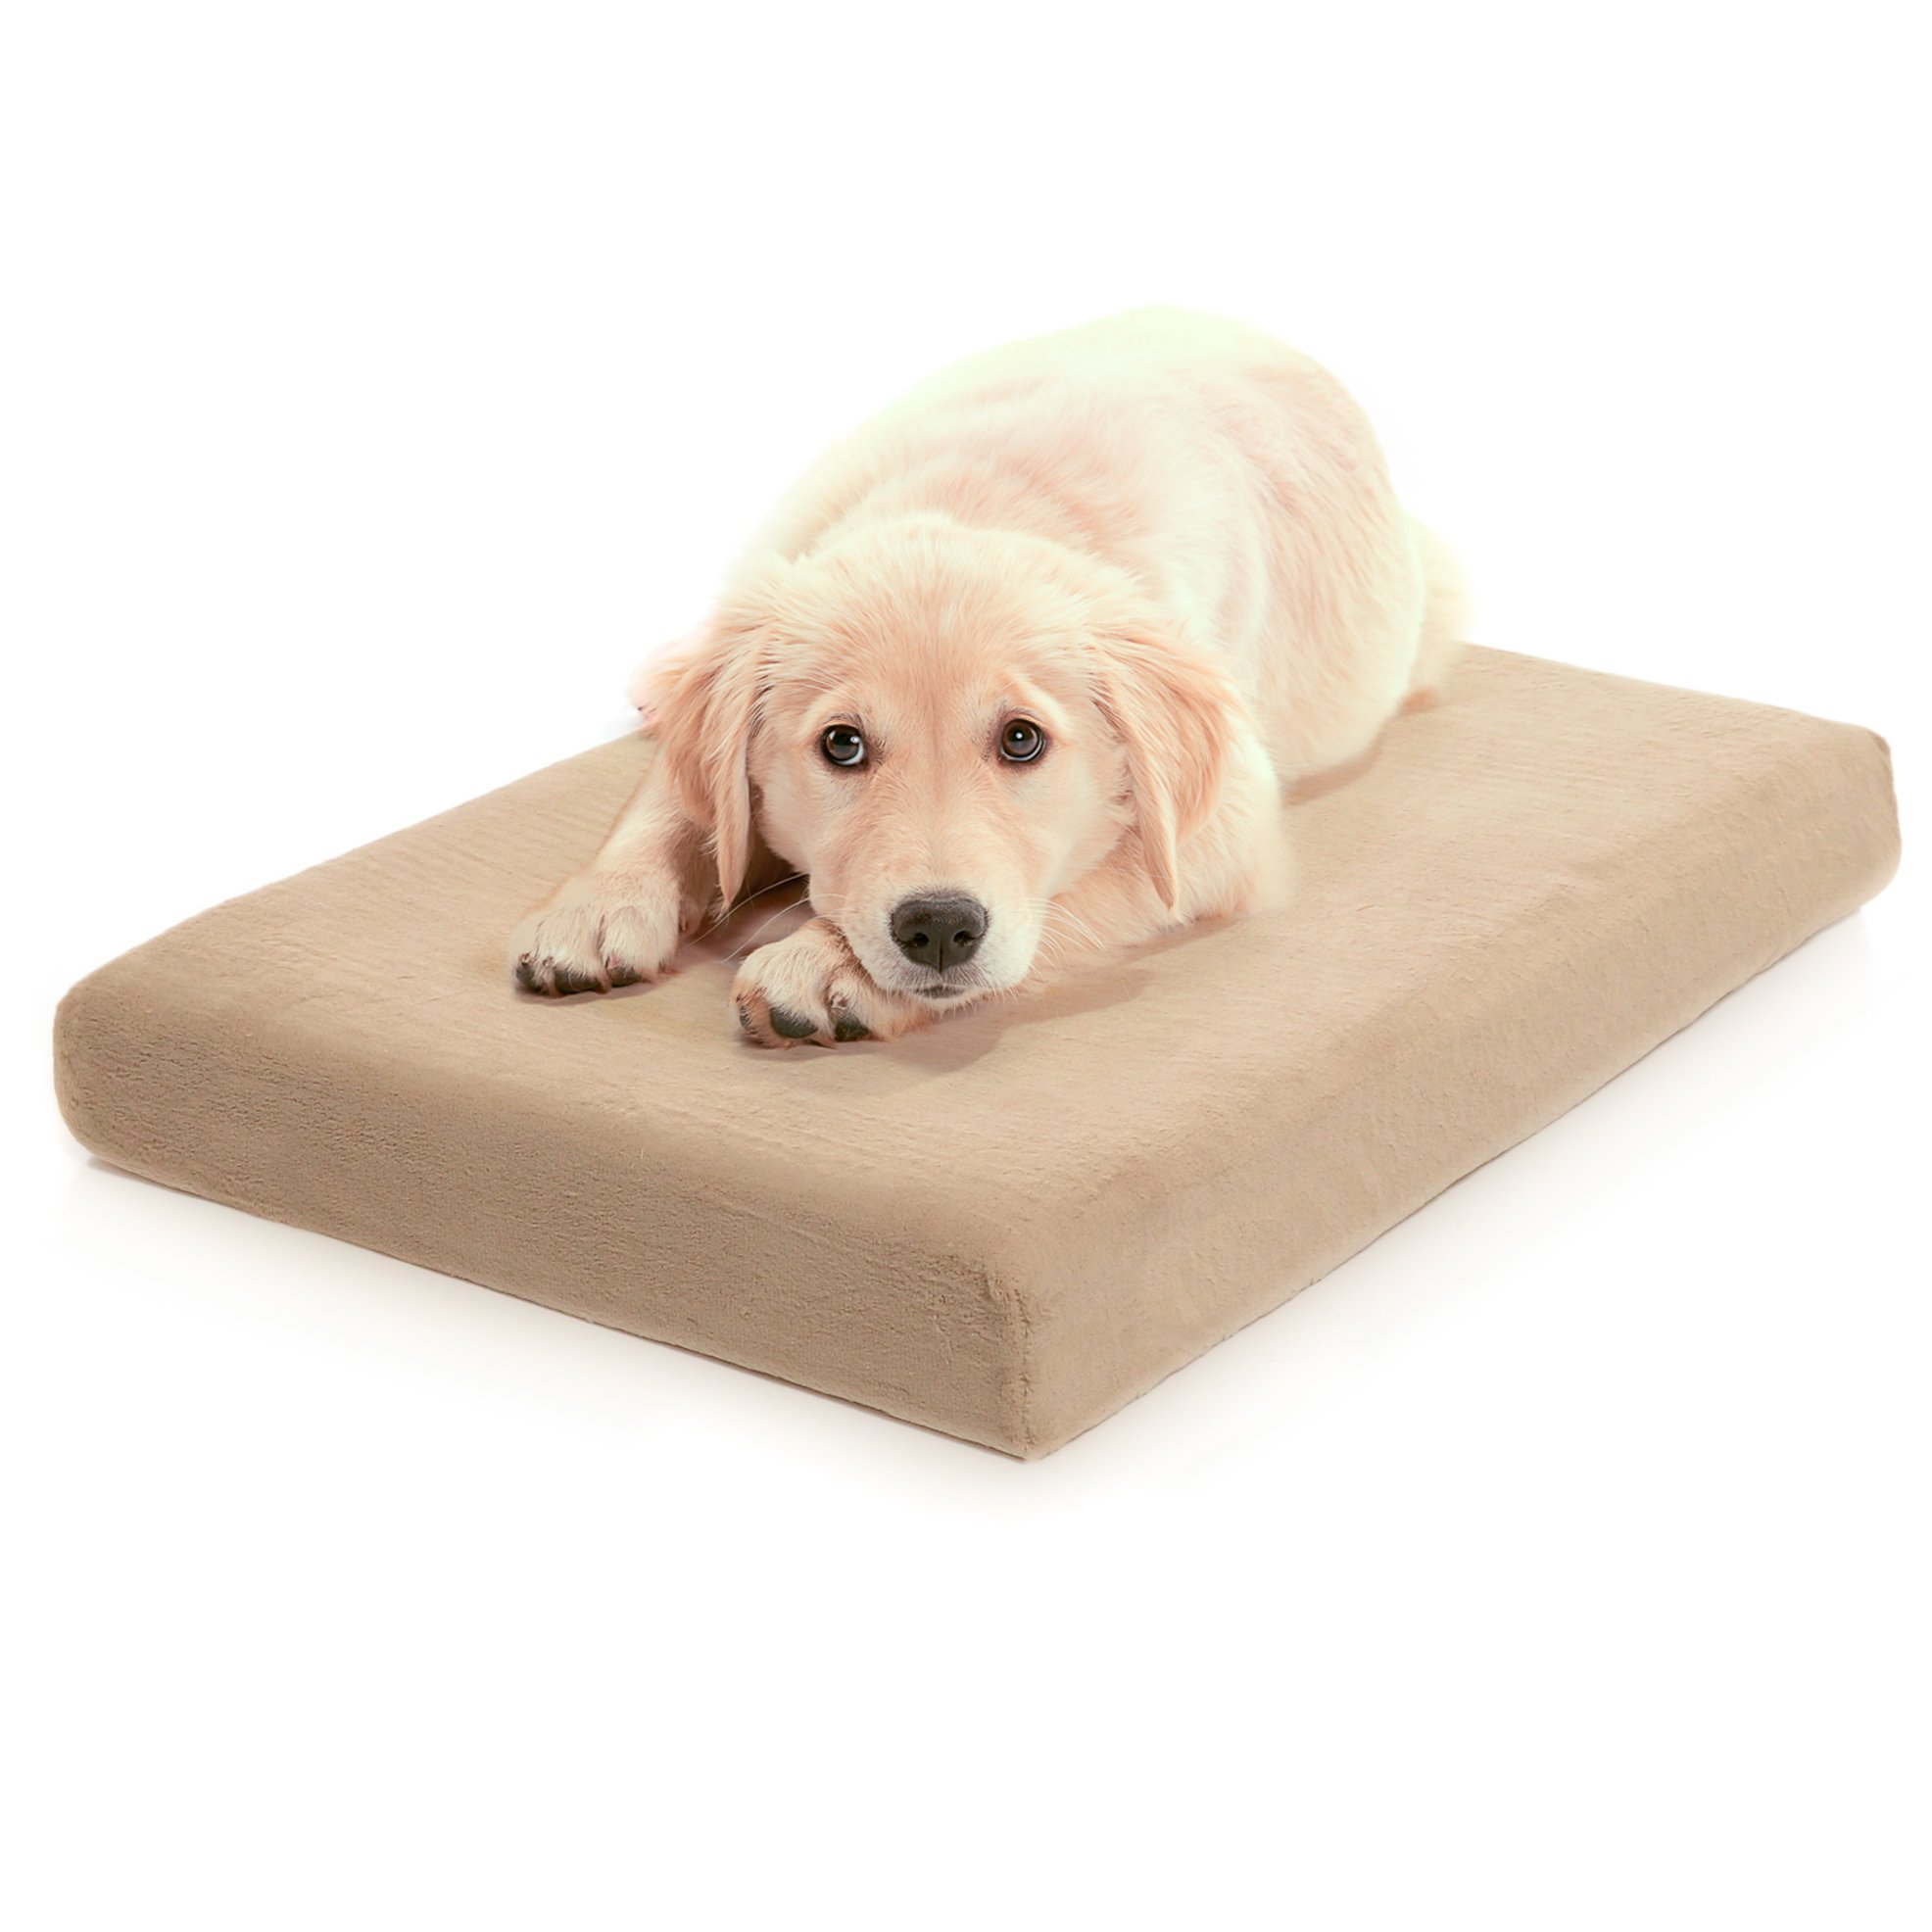 Milliard Premium Orthopedic Memory Foam Dog Bed with Anti-Microbial Waterproof Non-slip Cover, X Large 46x35x4 in by Milliard